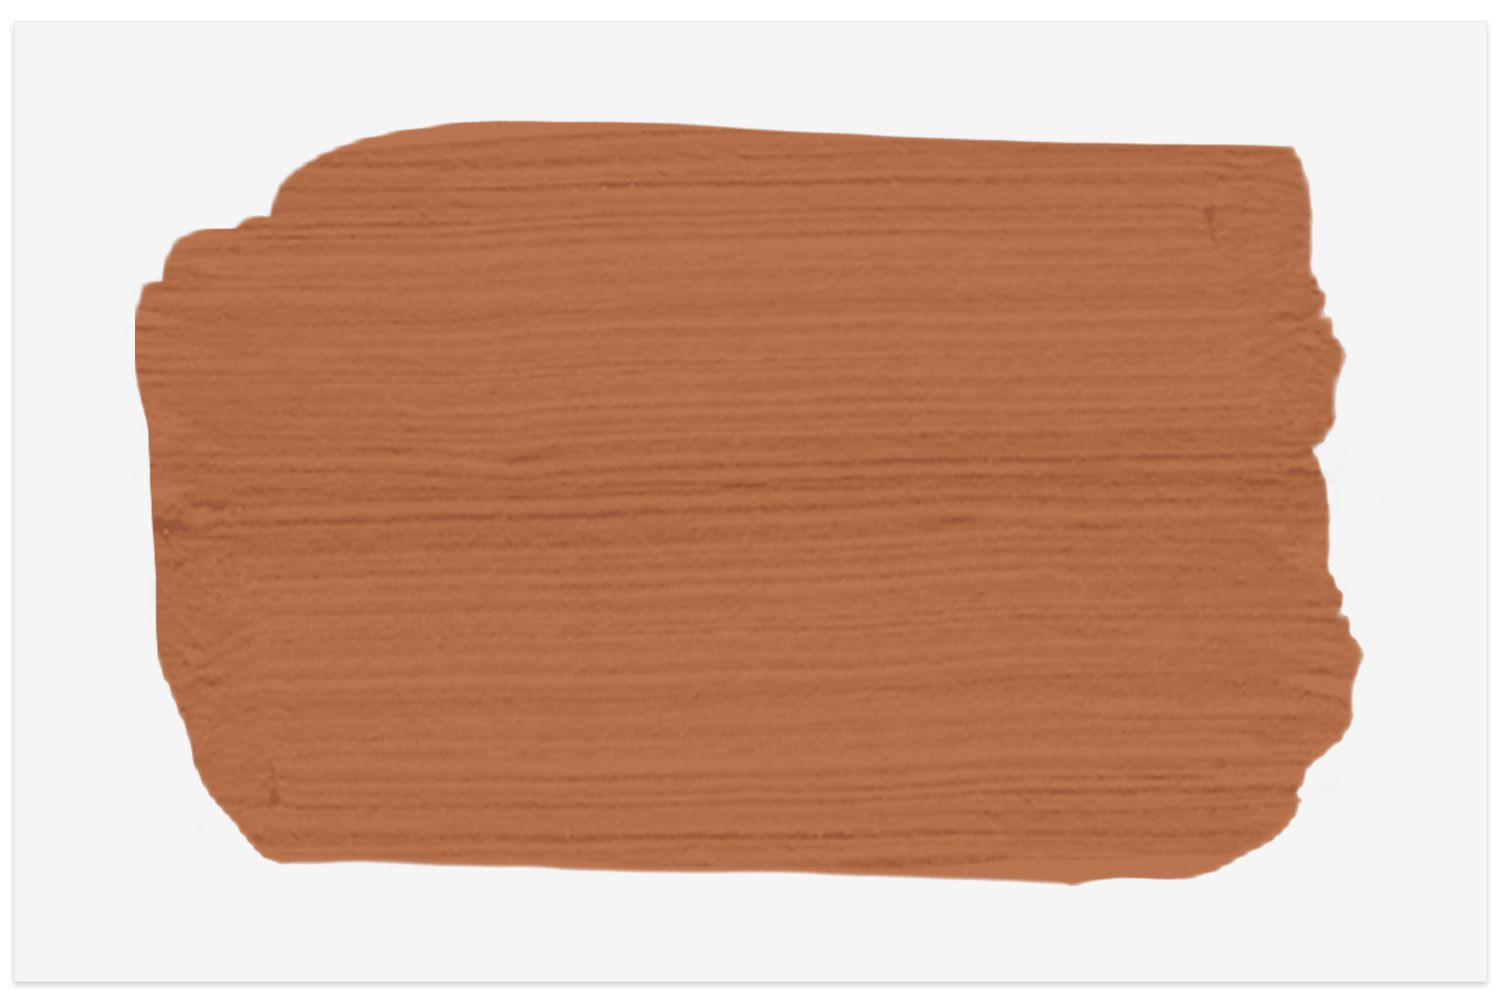 Benjamin Moore Firenze paint swatch for rustic Tuscan